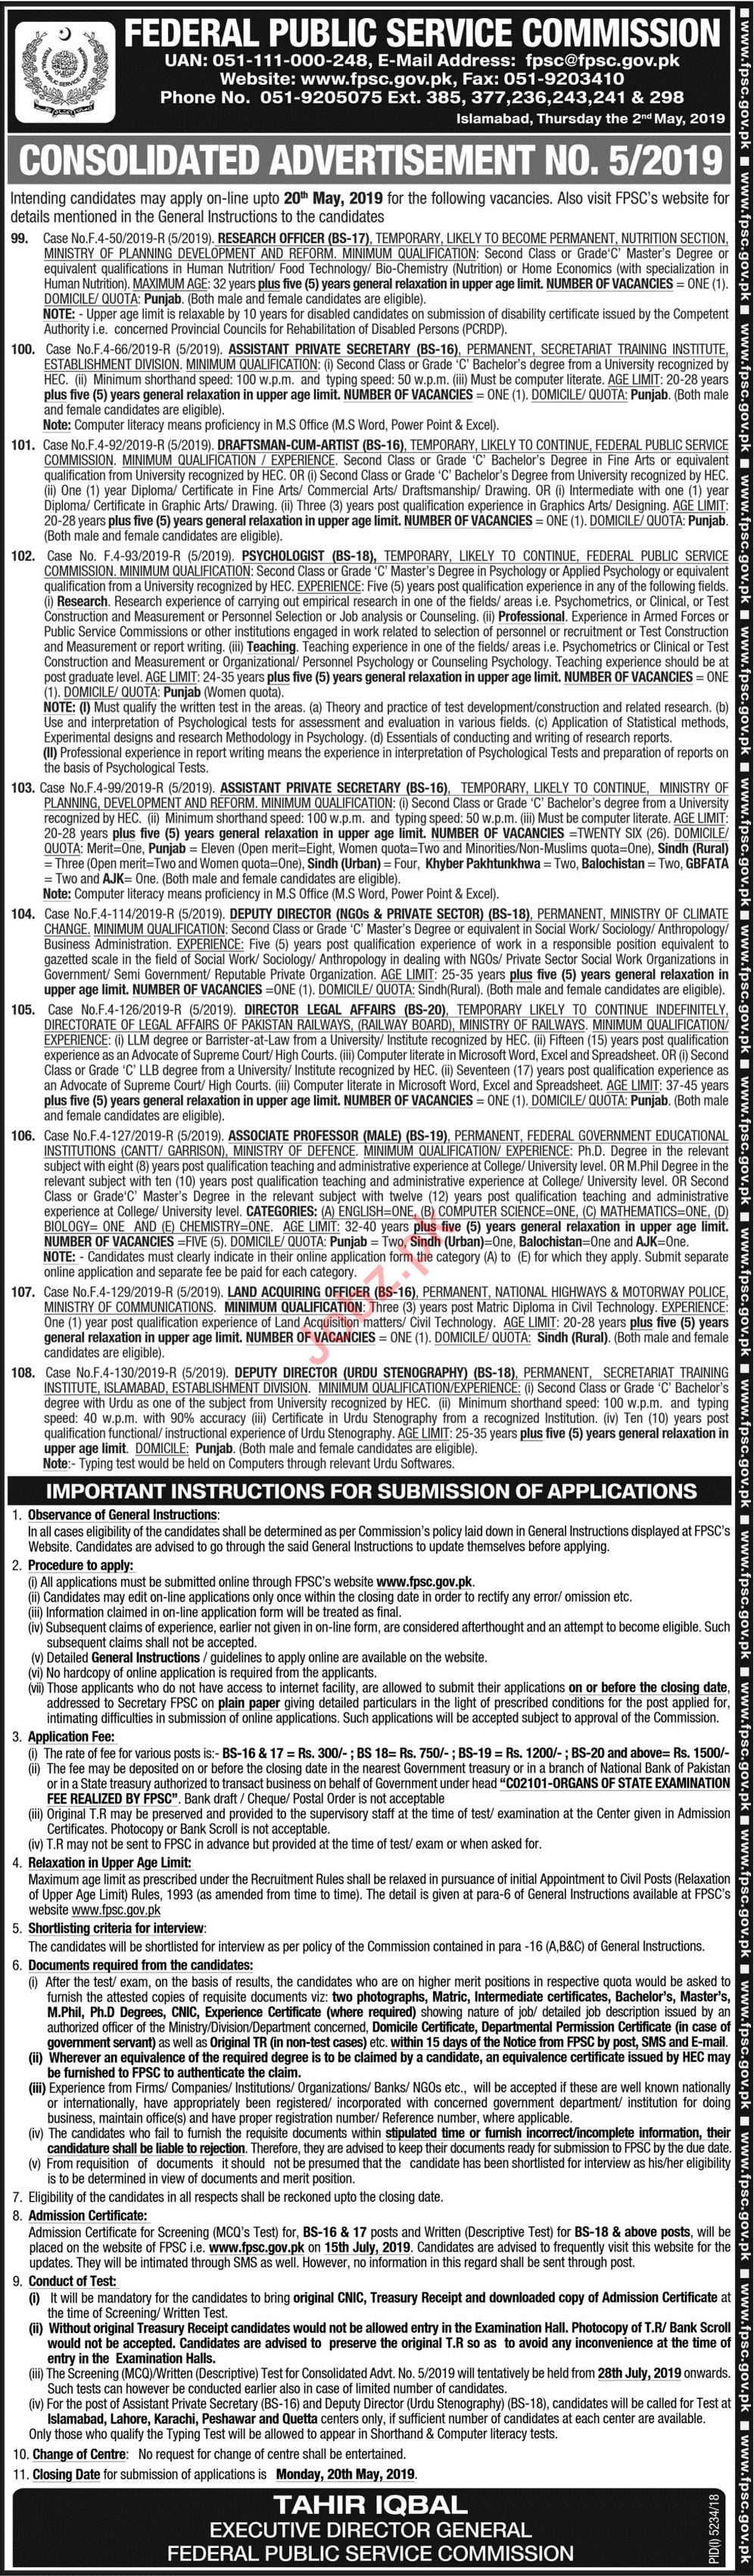 FPSC Jobs 2019 For Assistant Private Secretary in Islamabad